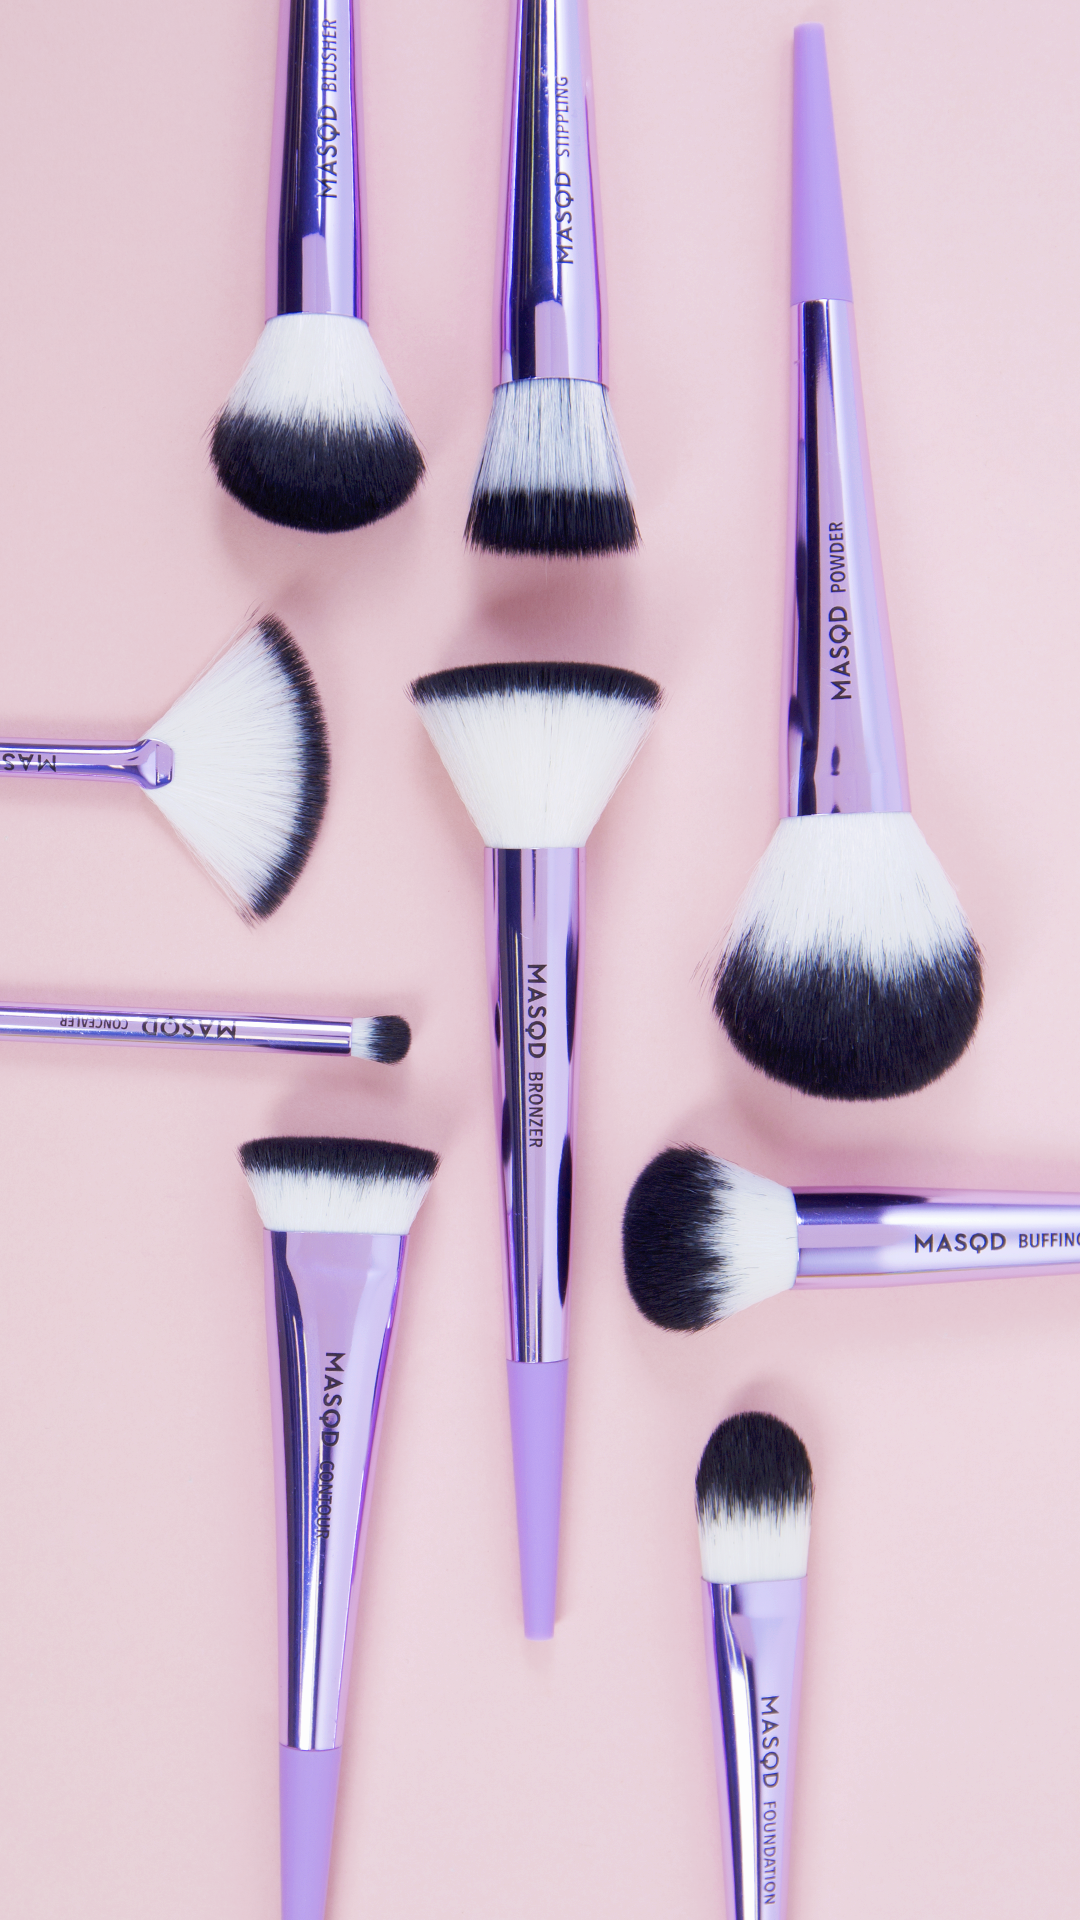 MASQD The Finishing Set Makeup Brushes at Boots Simple